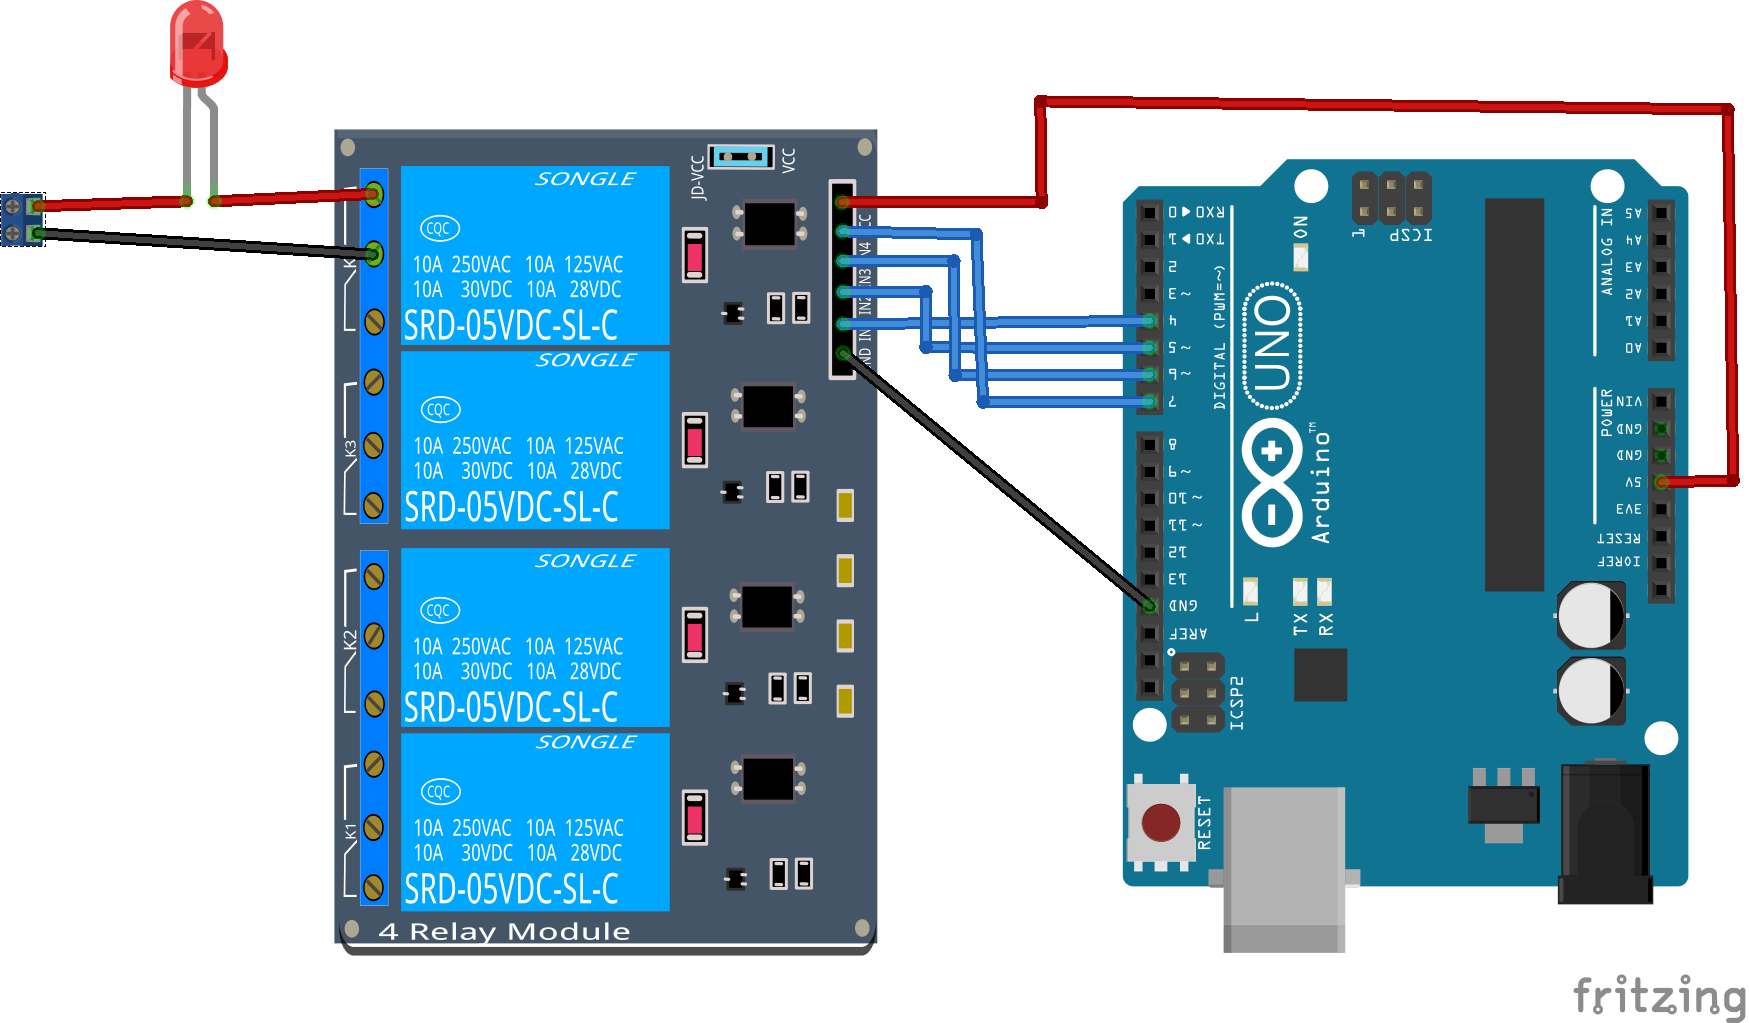 Sep 09,  · Obviously, you need a connection from the Arduino 5V pin to Relay board VCC, Arduino GND to Relay board GND, and then a digital pin from the Arduino to the IN1 or IN2 pins on the Relay board. When the digital pin goes HIGH, it should switch the relay.